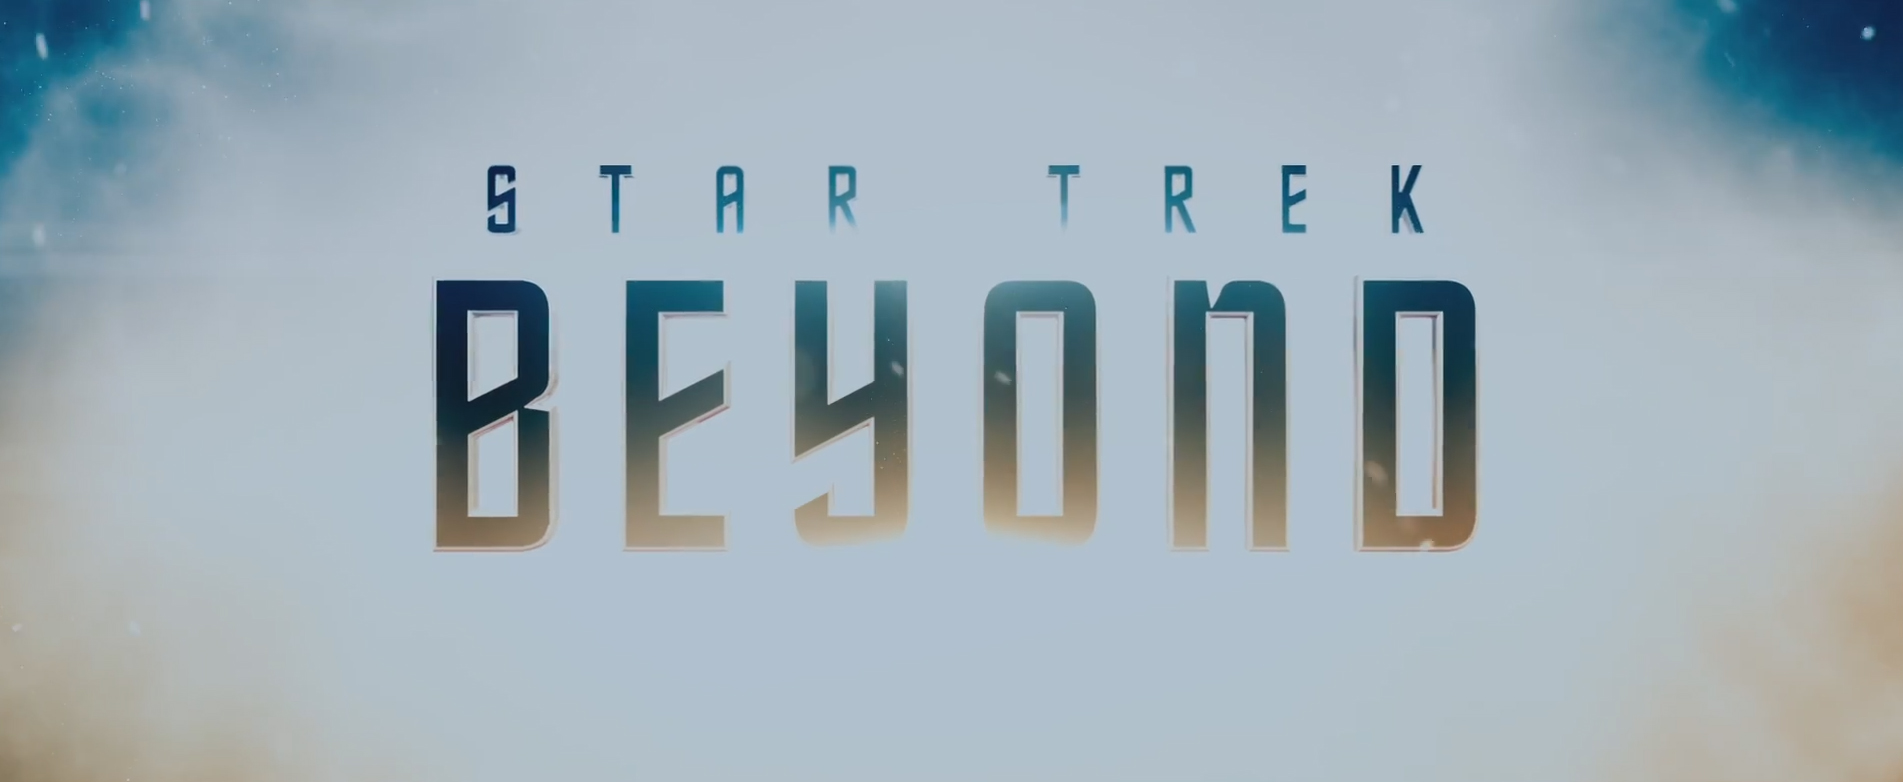 Star Trek Beyond Trailer #2